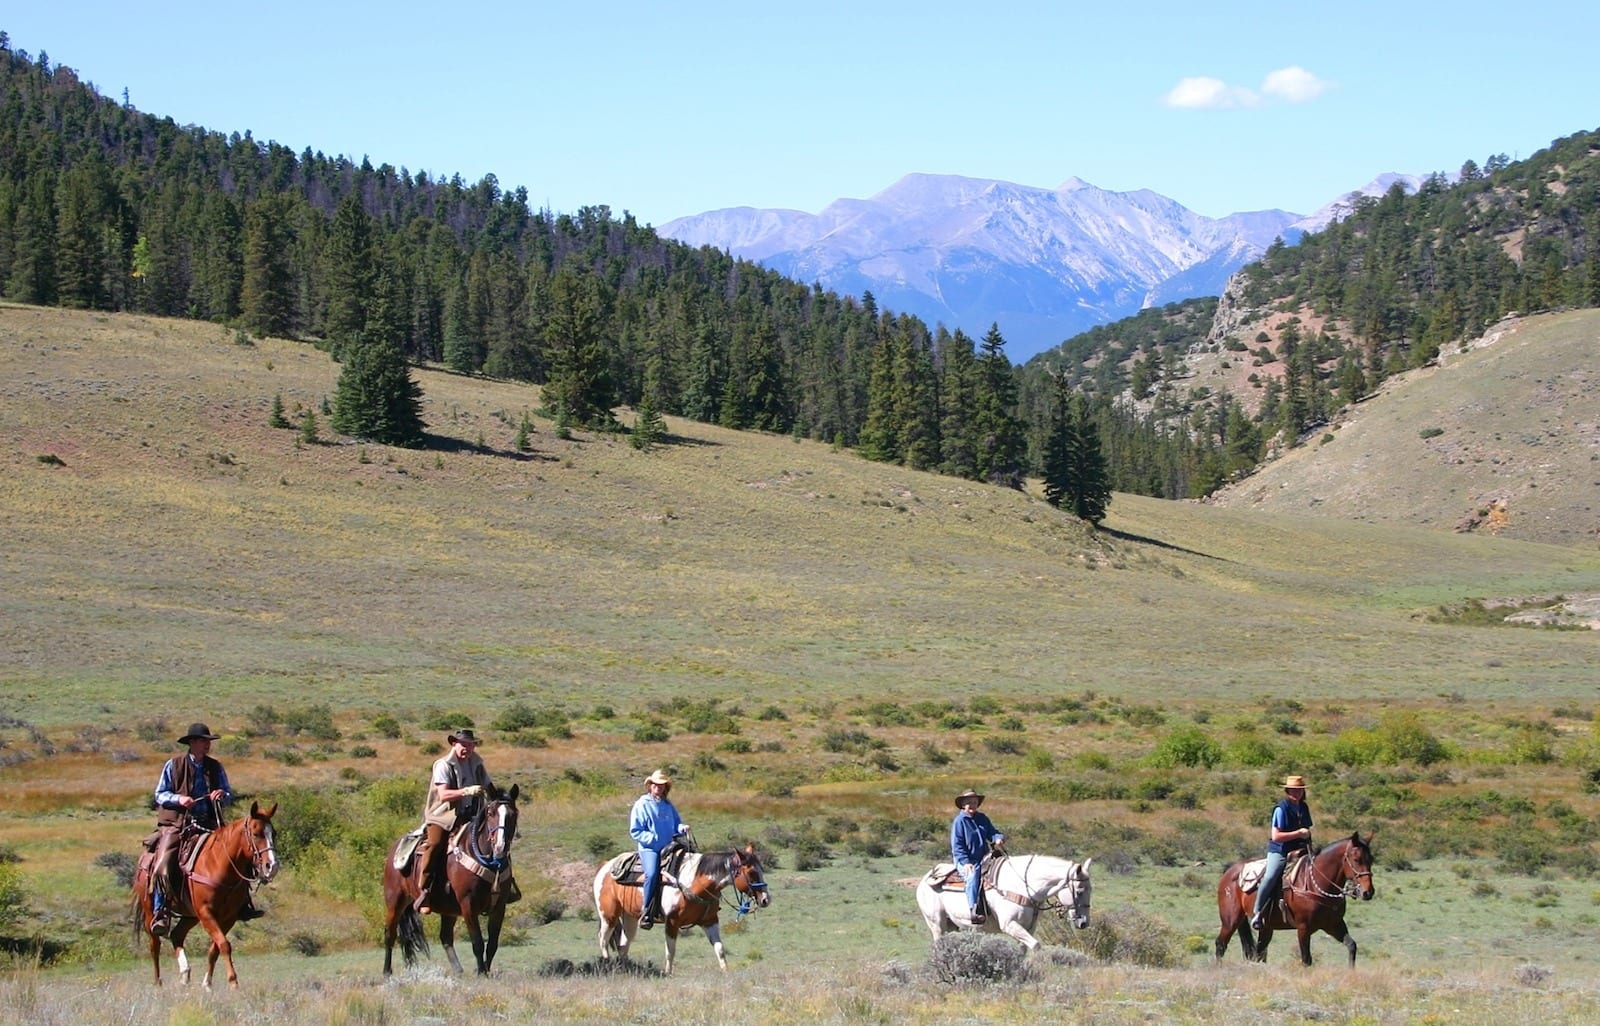 Image of 5 men riding horses in the mountains at Elk Mountain Ranch, CO